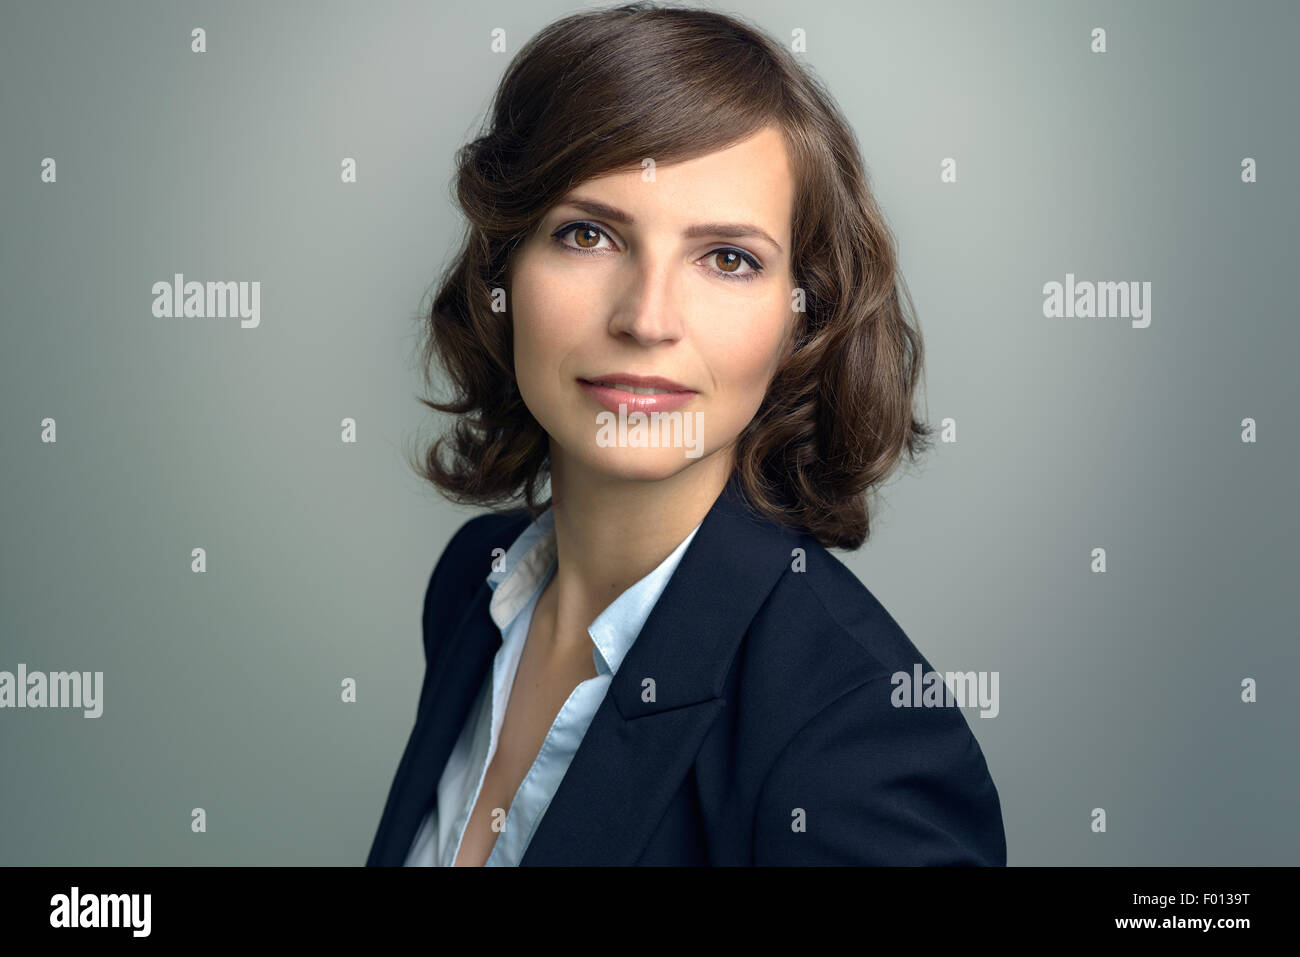 Attractive businesswoman with curly brown hair wearing a stylish jacket standing sideways looking at the camera - Stock Image